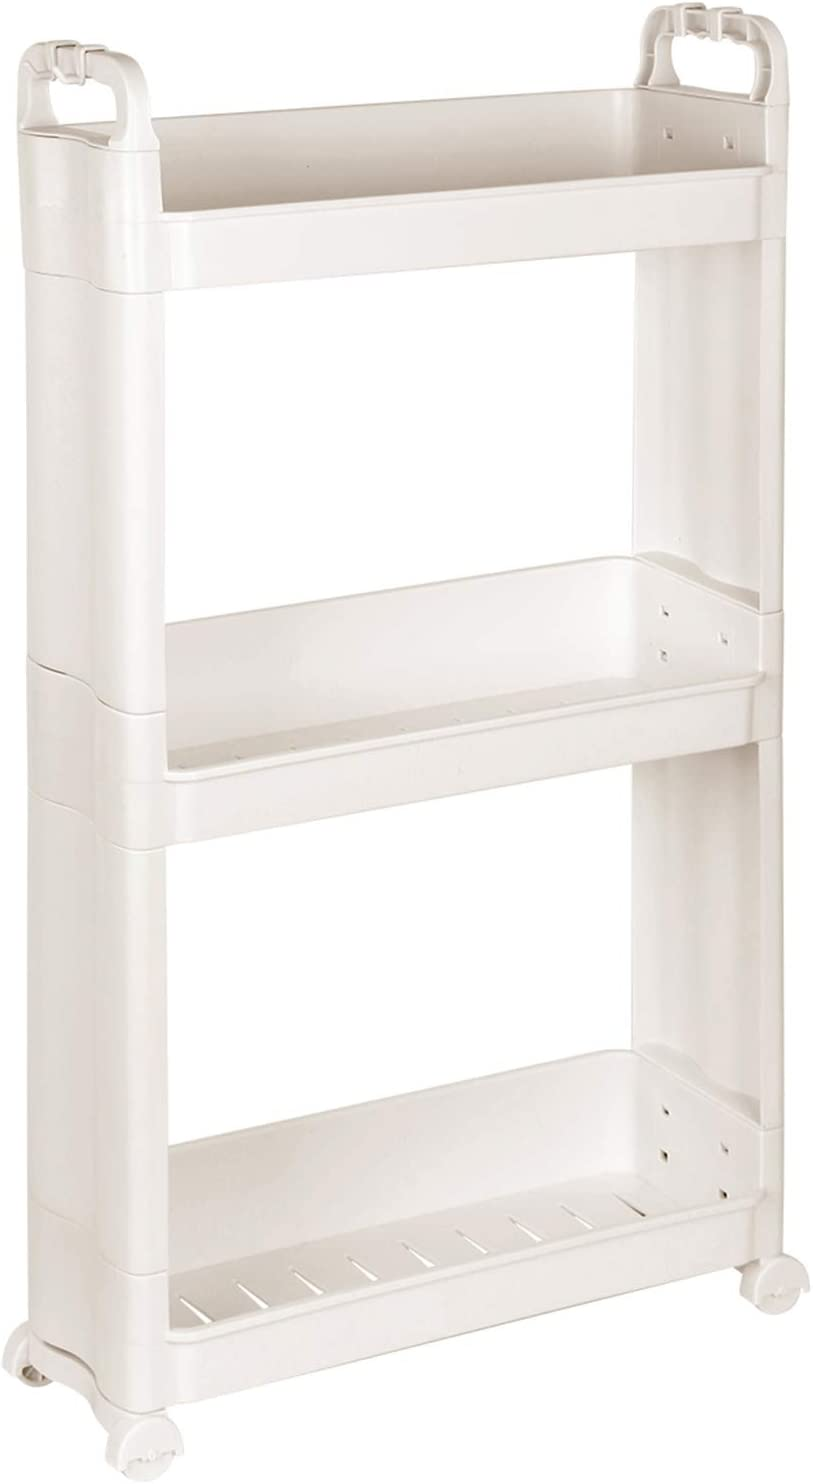 Livememory 3 Tier Slim Rolling Storage Cart with Wheel, Narrow Shelf Slide Out Storage Rack Shelves for Narrow Places - Beige Plastic